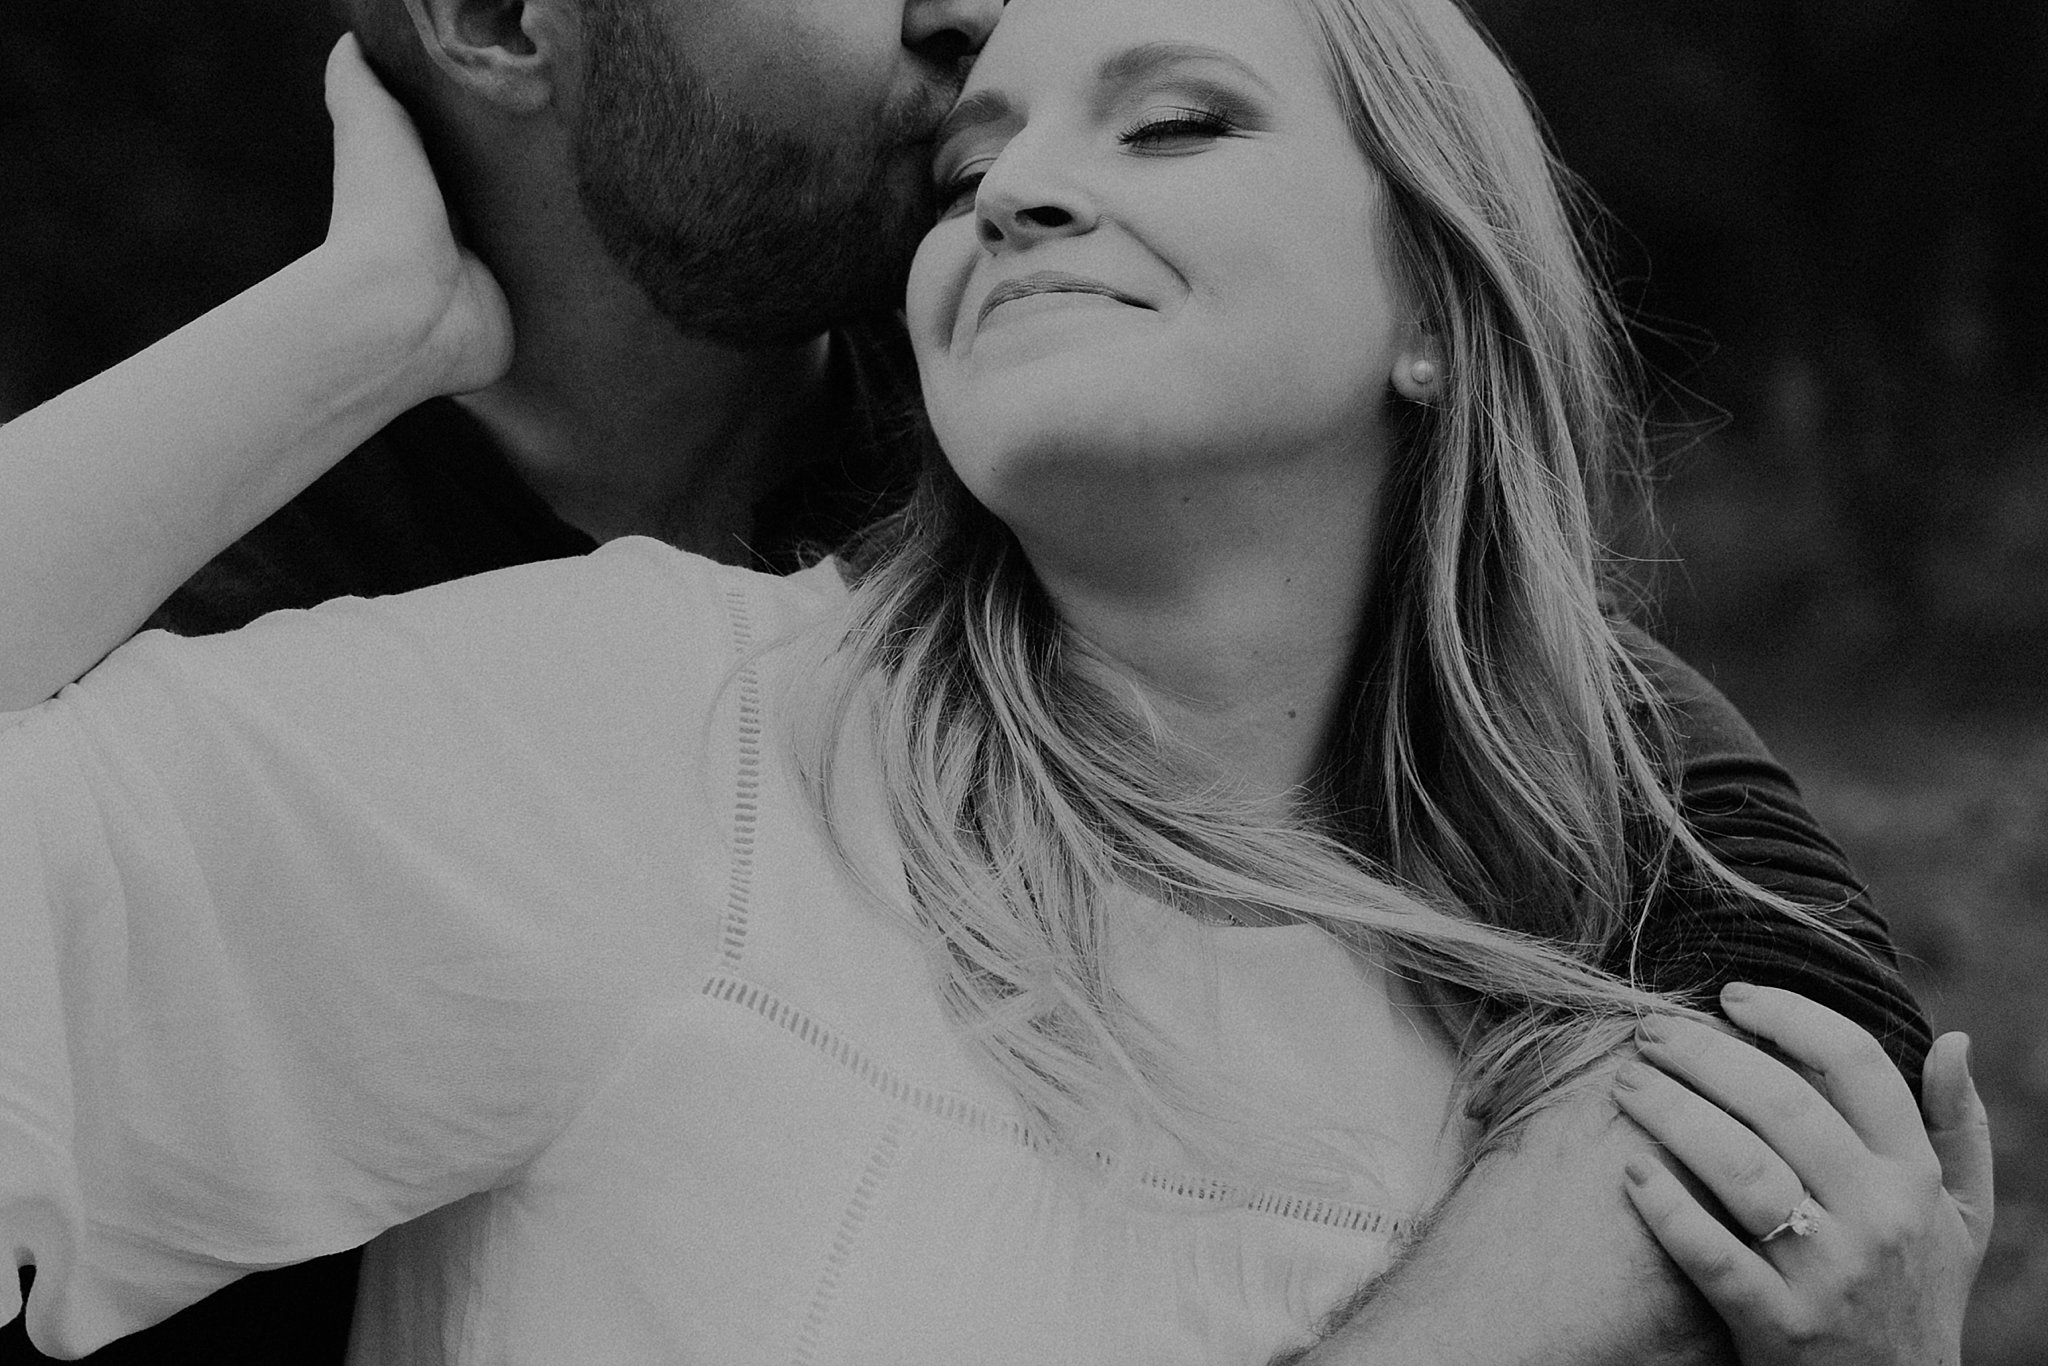 samantha_mcfarlen_bellingham_washington_engagement_photography_seattle_wedding_photographer_0278.jpg